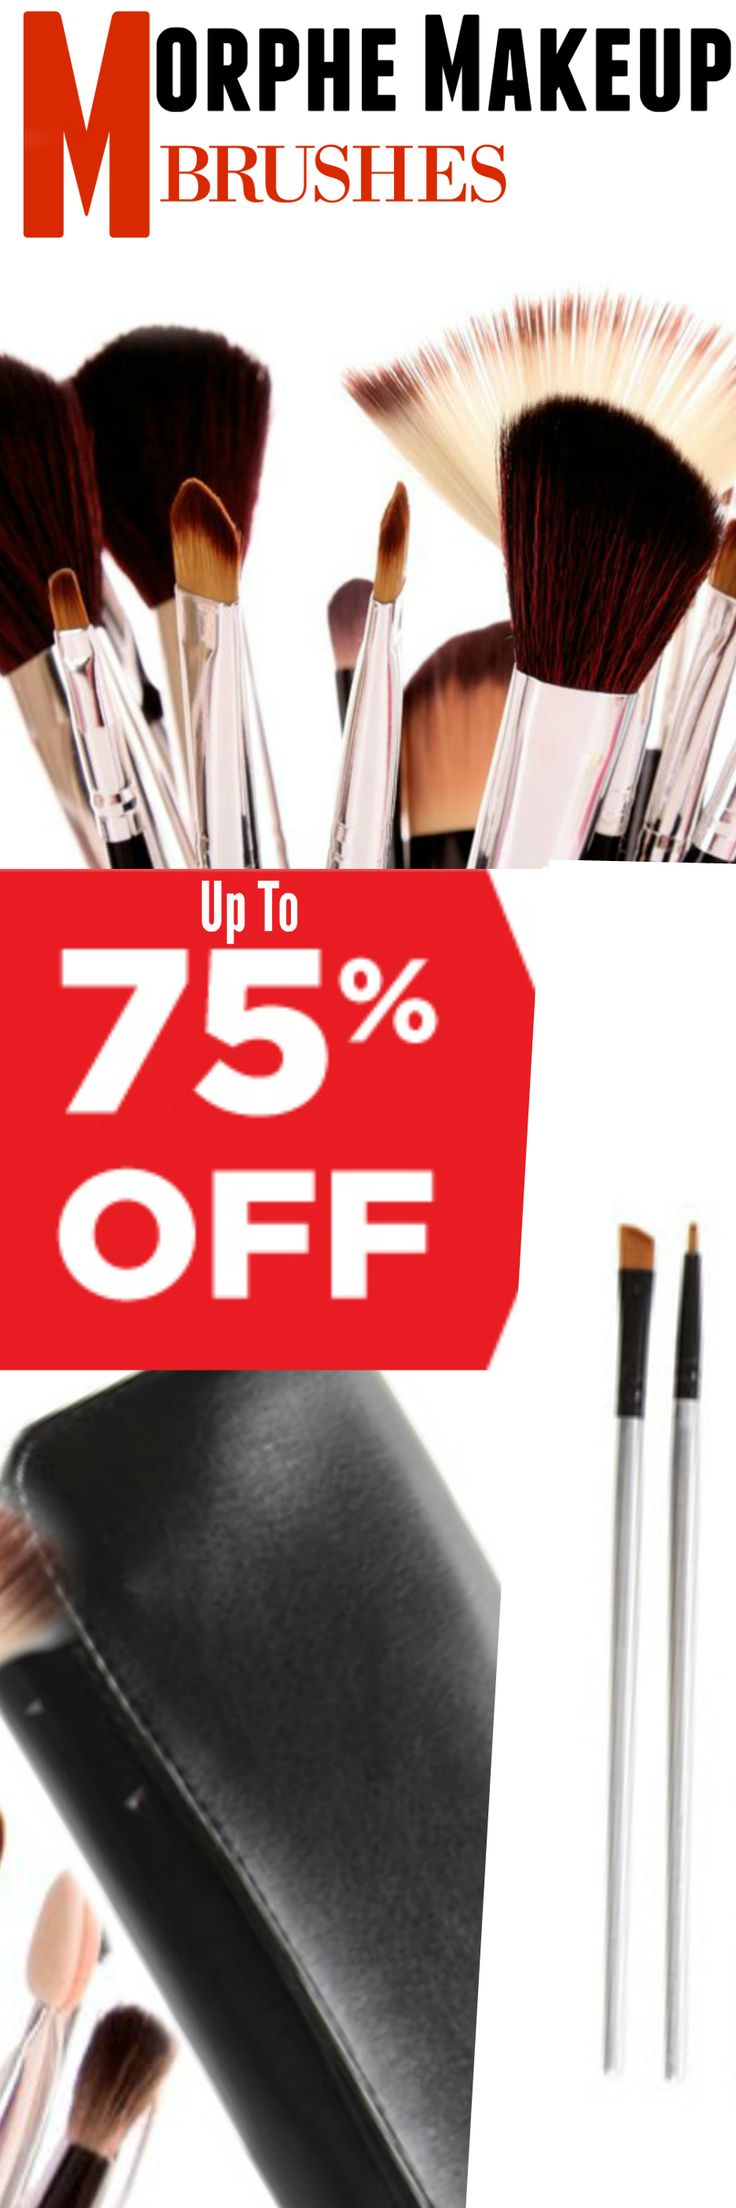 While quality is important when selecting brushes, they can cost a lot.  But not today, as HauteLook is featuring MORPHE brushes for up to 75% off! By Barbie's Beauty Bits